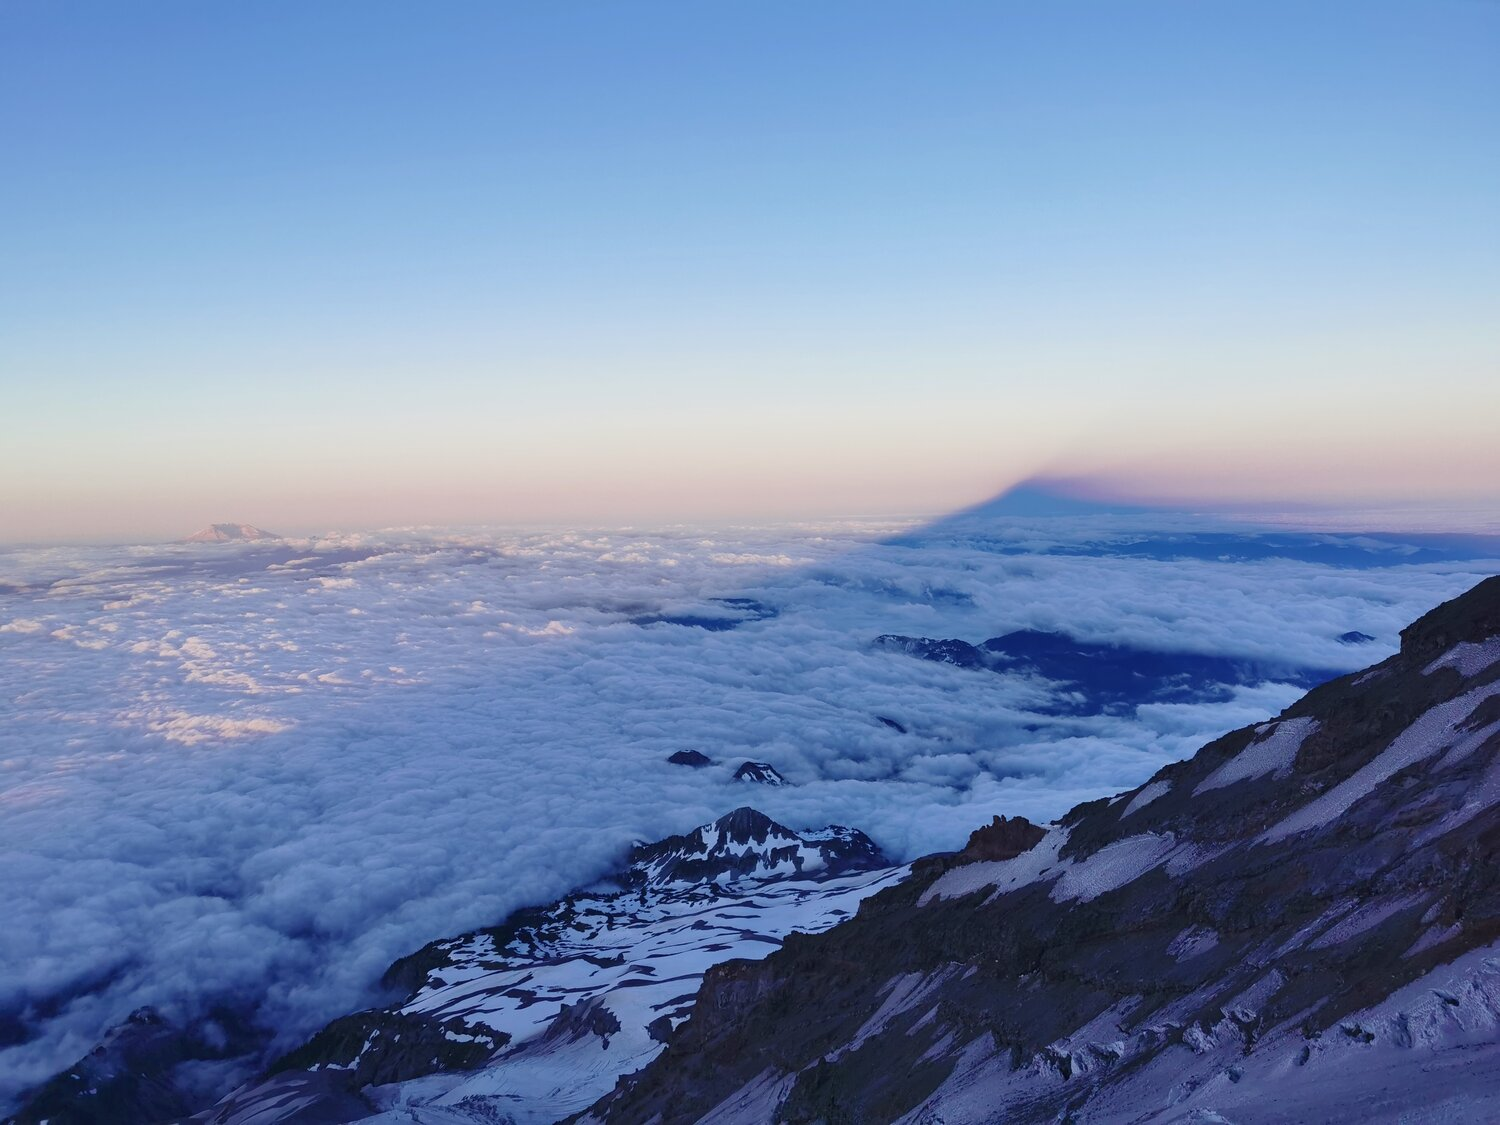 Rainier's shadow at dawn with St. Helens off to the left